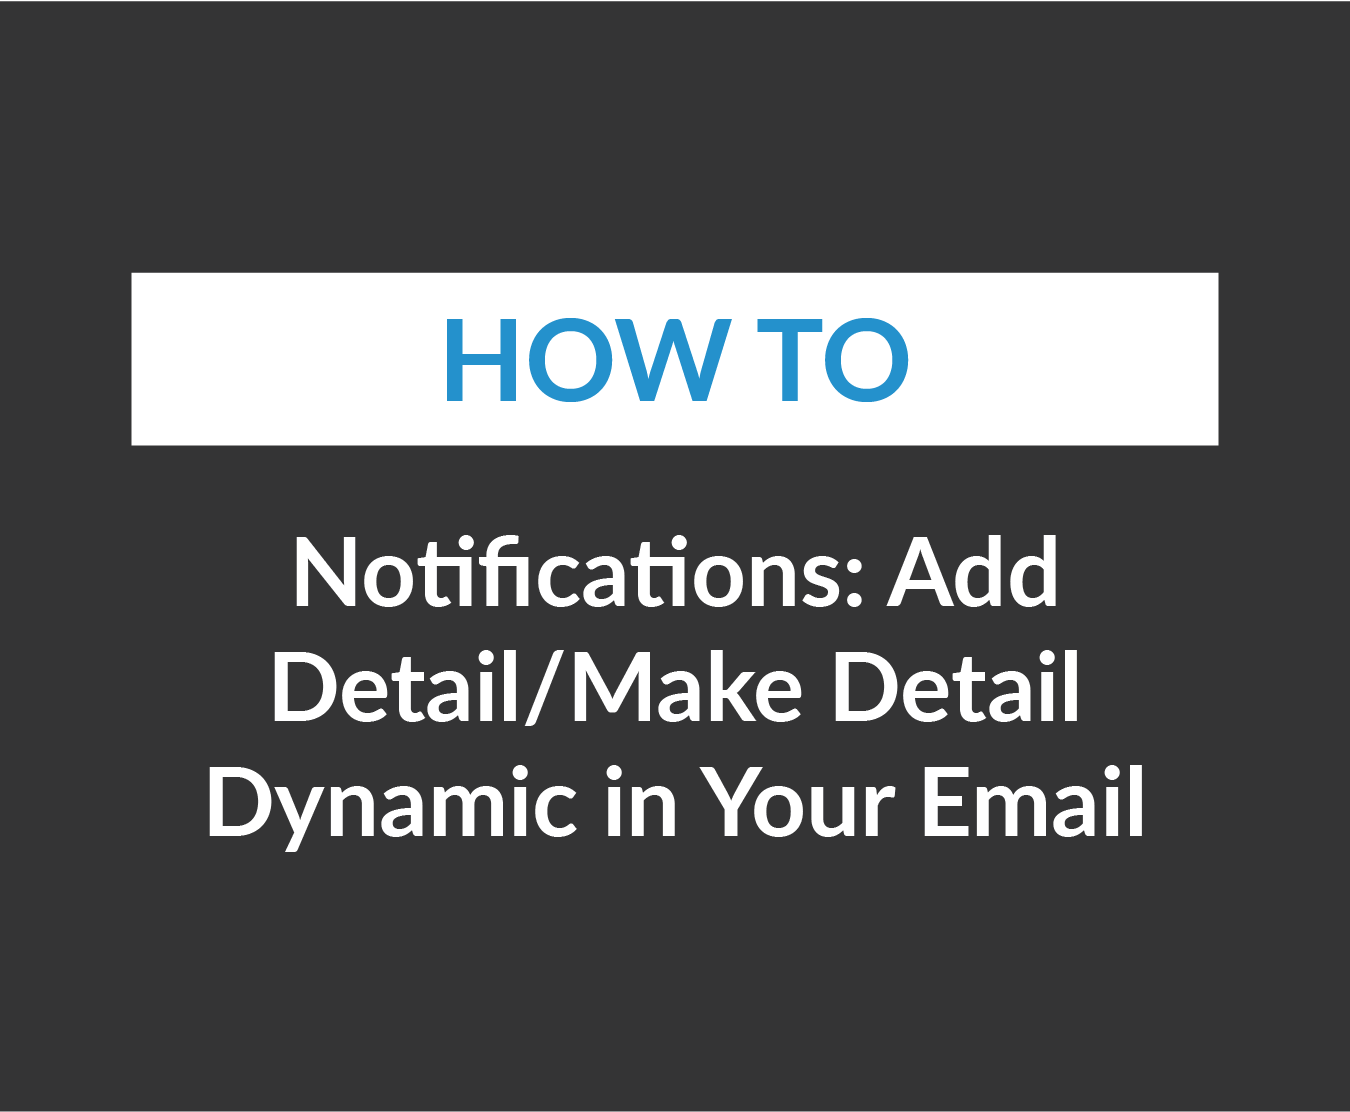 Make Detail Dynamic in Your Email